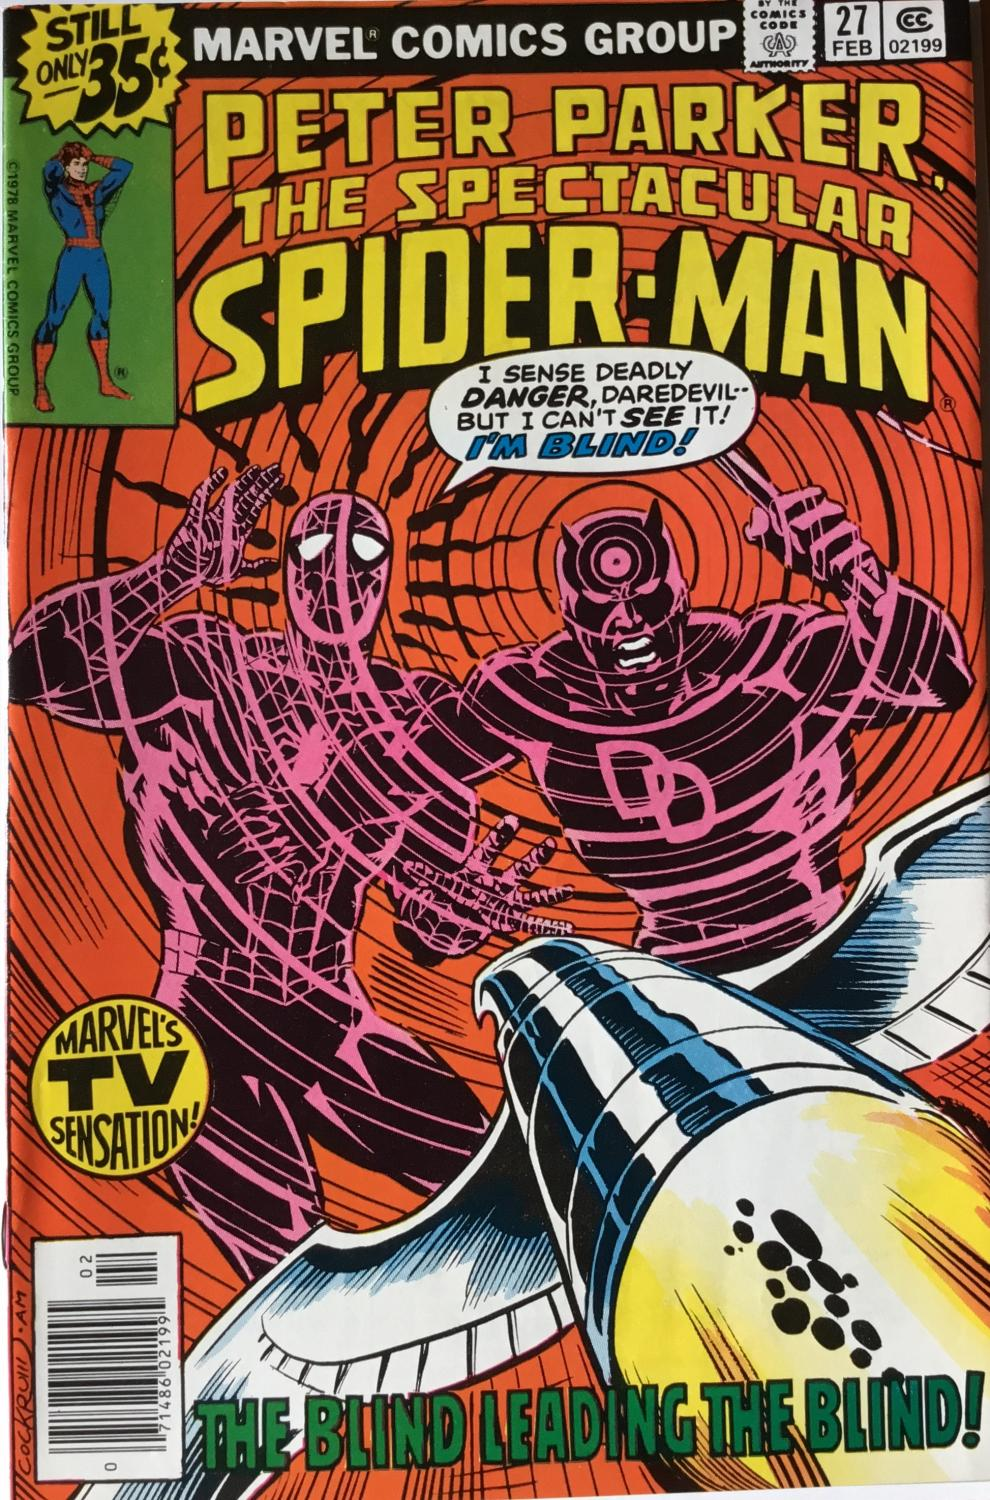 PETER PARKER, The SPECTACULAR SPIDERMAN Nos. 27 & 28 (Feb & March 1979) (NM) Frank Miller's 1st. Daredevil MANTLO, BILL As New Softcover